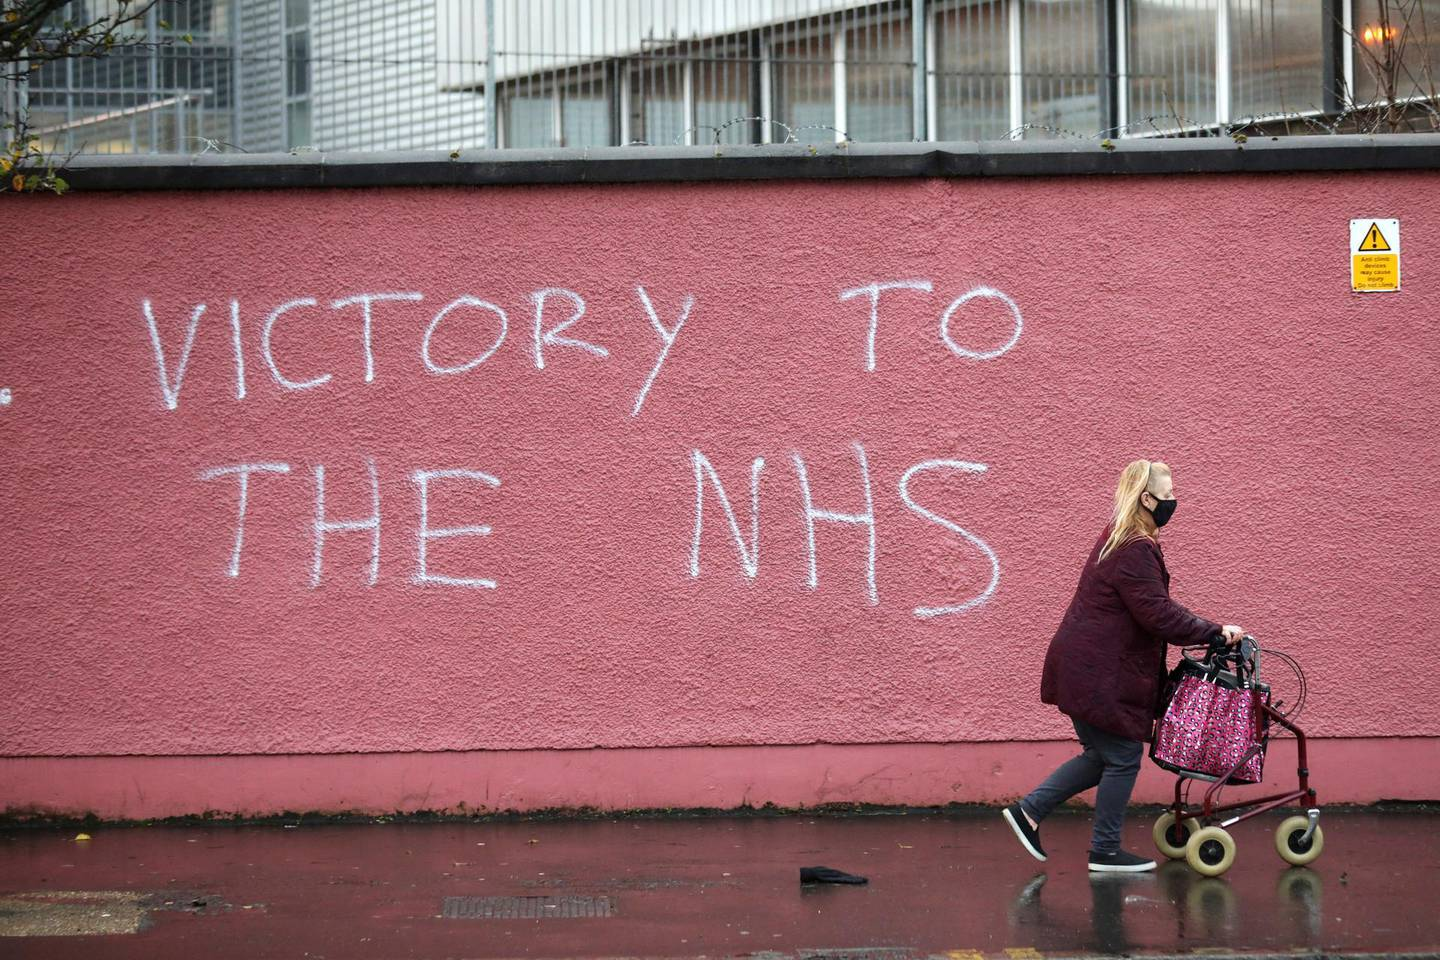 A woman walks past graffiti with the words Victory to the NHS (National Health Service) on a wall at the Royal Victoria Hospital, one of several hospitals around Britain that are handling the initial phase of a COVID-19 immunization program, in West Belfast, Northern Ireland, Tuesday, Dec. 8, 2020. British health authorities rolled out the first doses of a widely tested and independently reviewed COVID-19 vaccine Tuesday, starting a global immunization program that is expected to gain momentum as more serums win approval. (AP Photo/Peter Morrison)